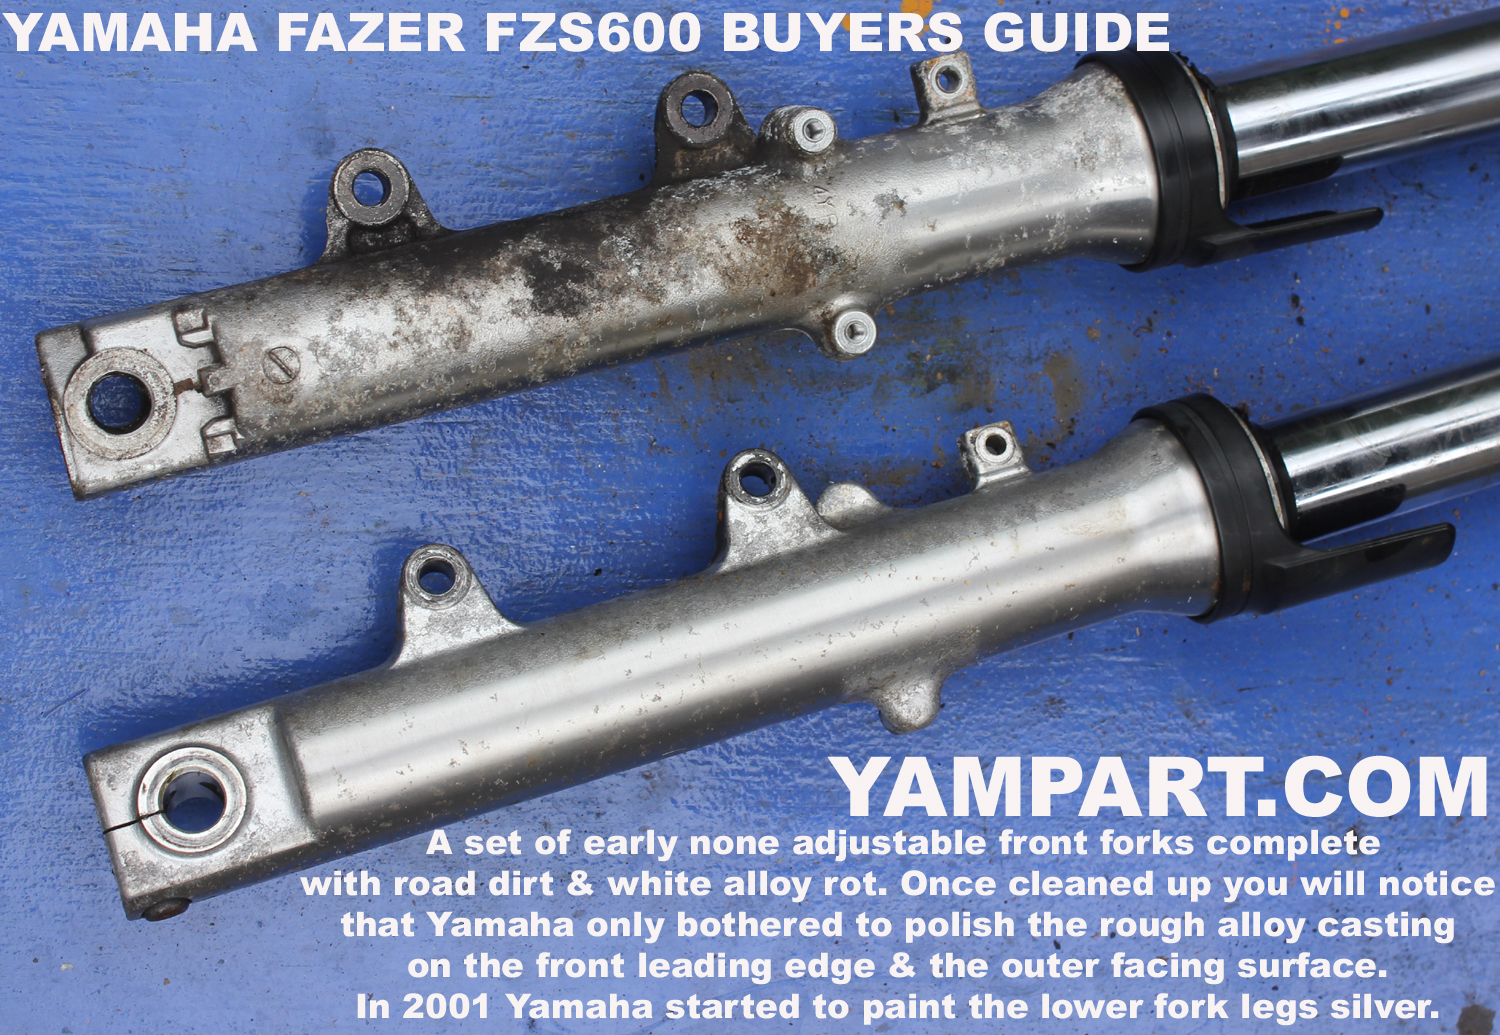 YAMAHA FAZER FZS 600 BUYERS GUIDE 1998 FRONT FORKS YAMPART.COM UESD PARTS